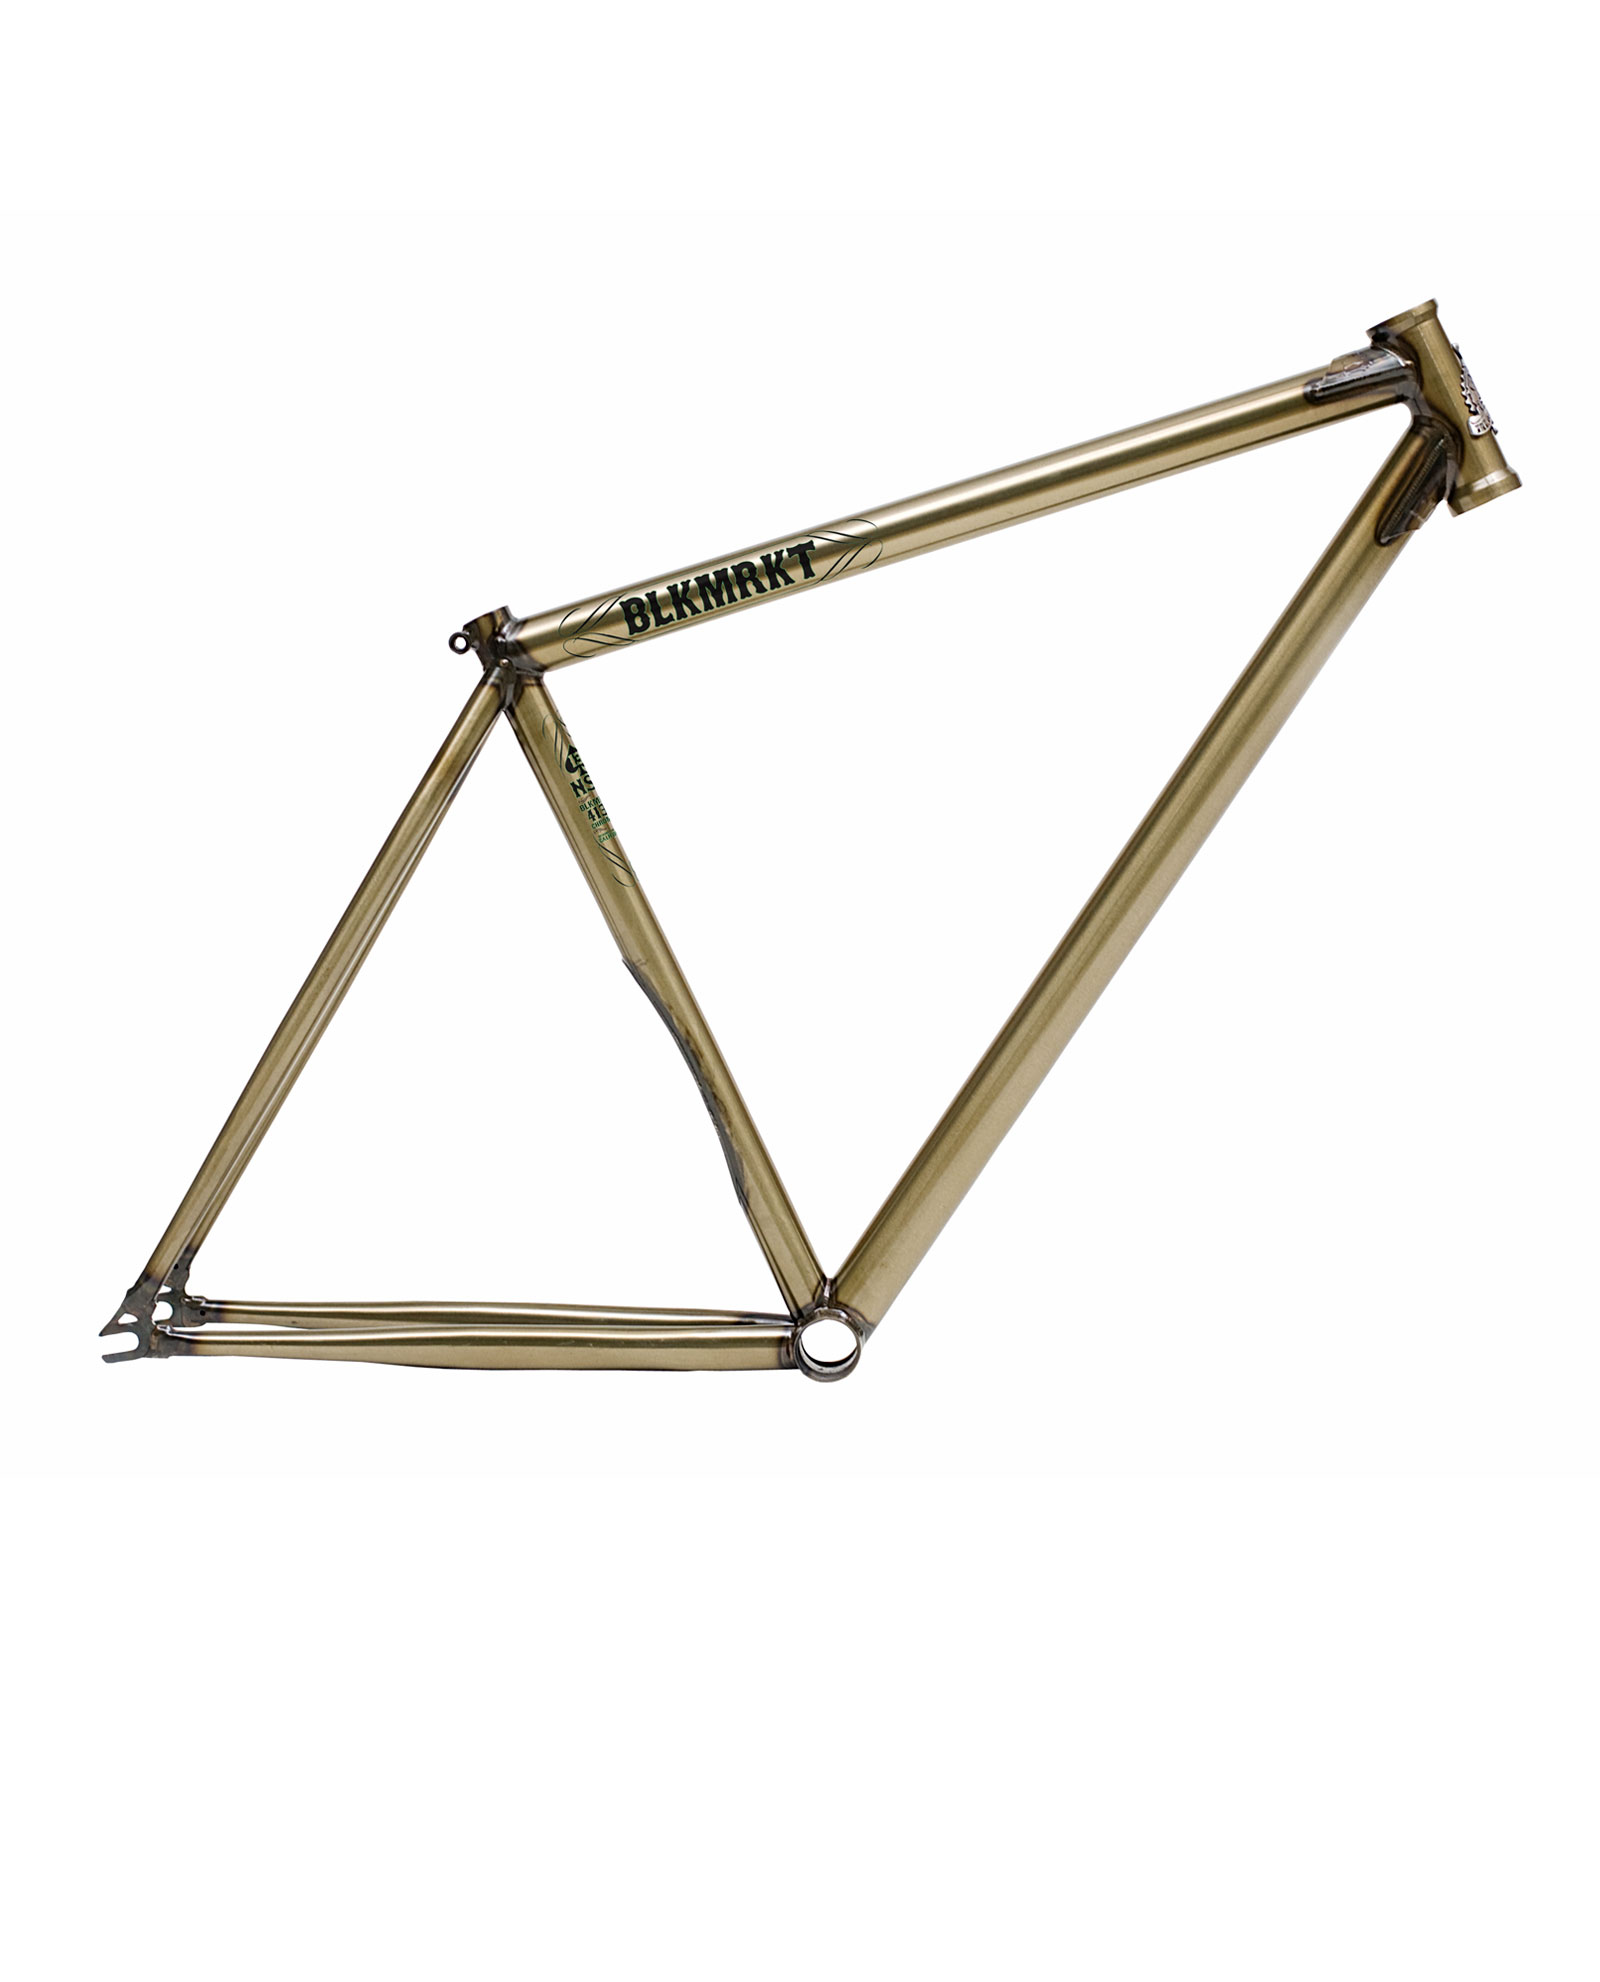 NSF | blackmarketbikes